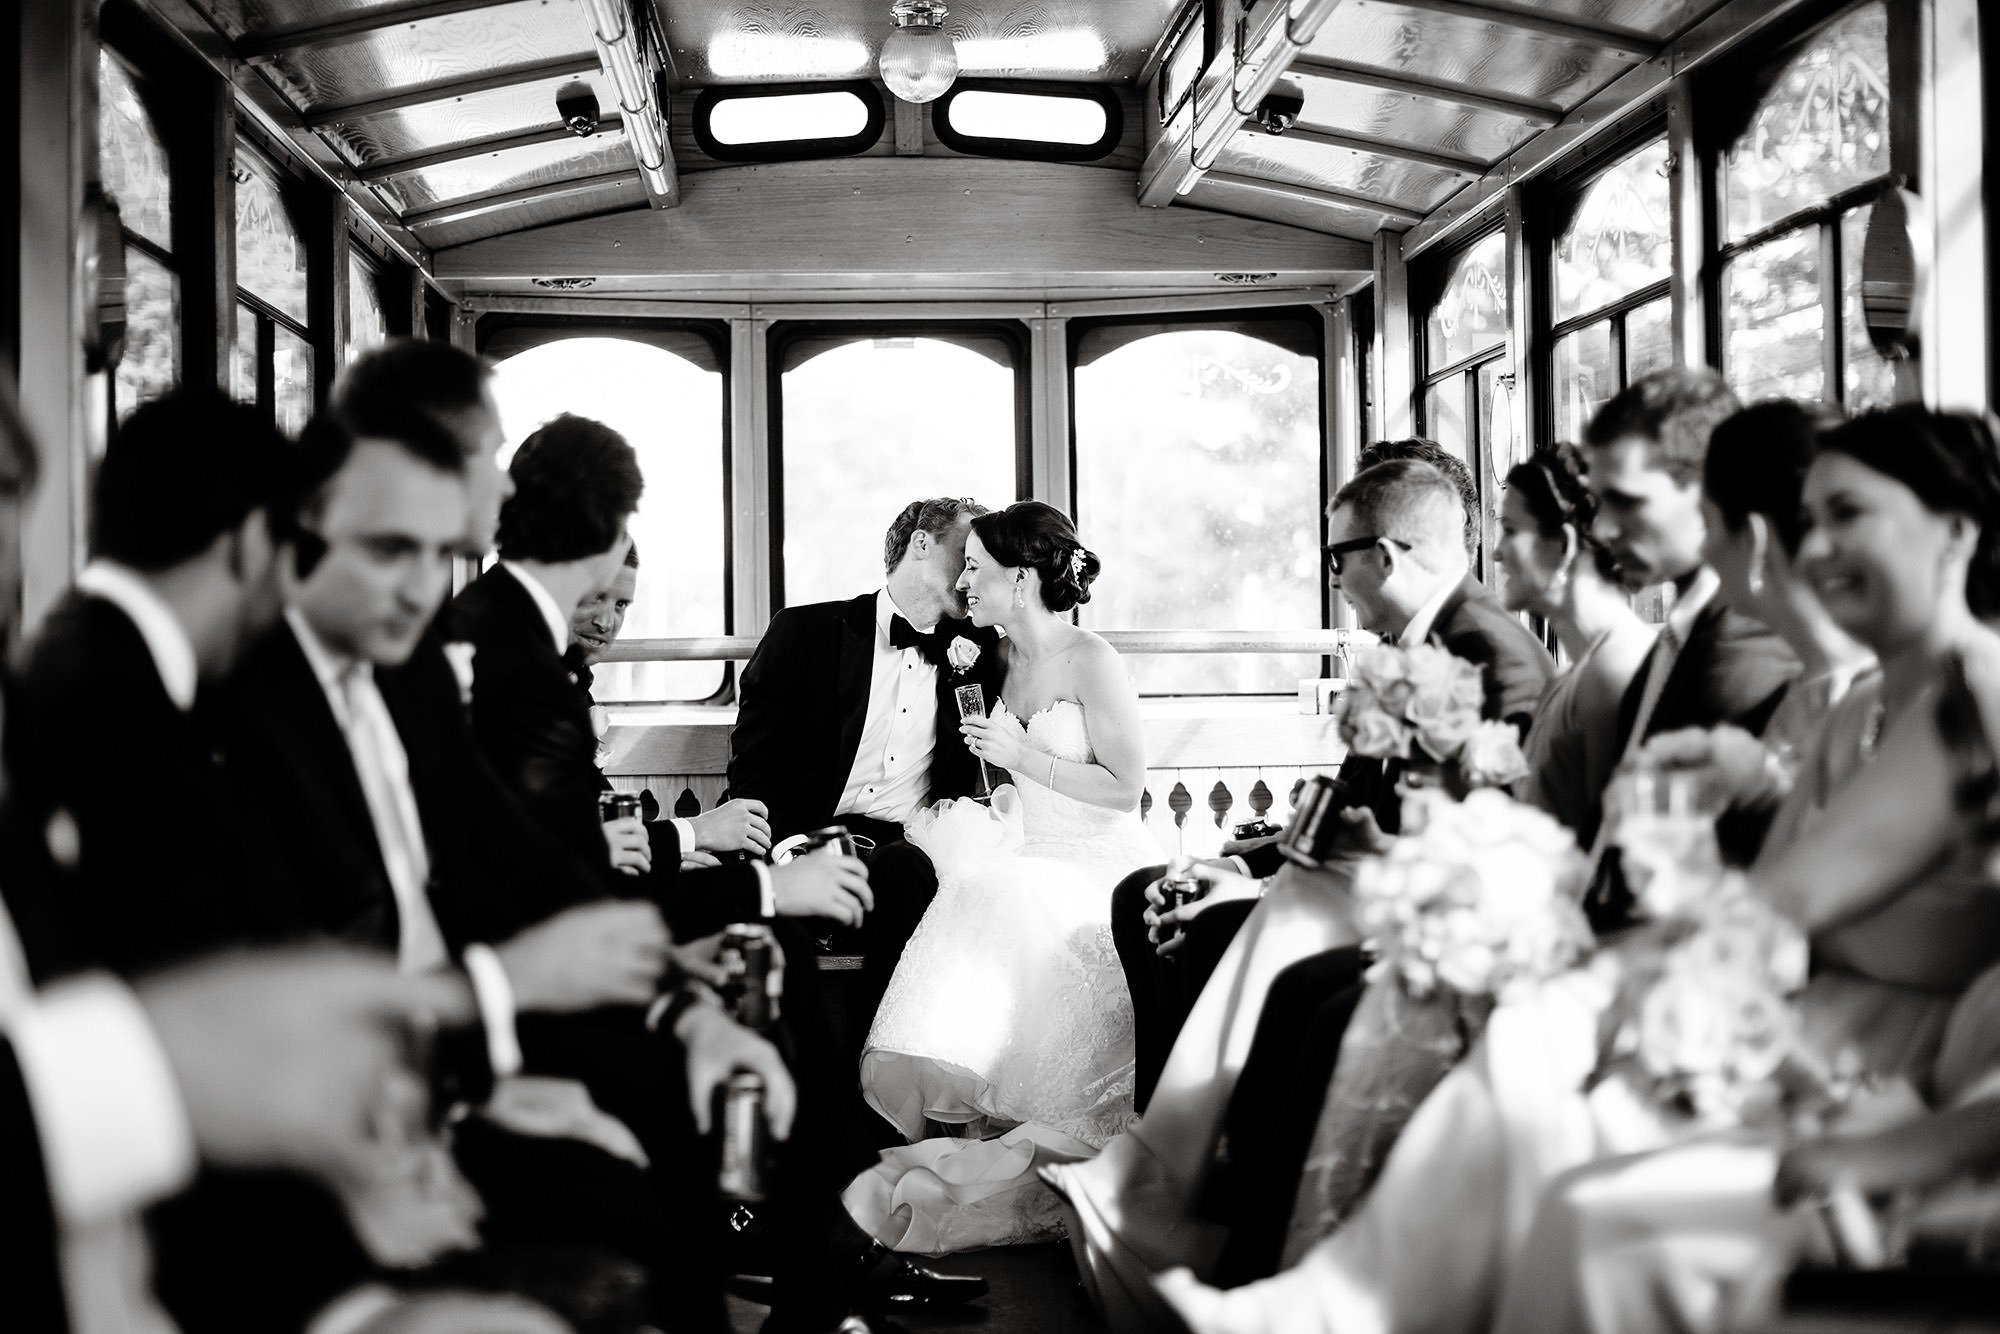 The bride and groom share an intimate moment on the trolley.